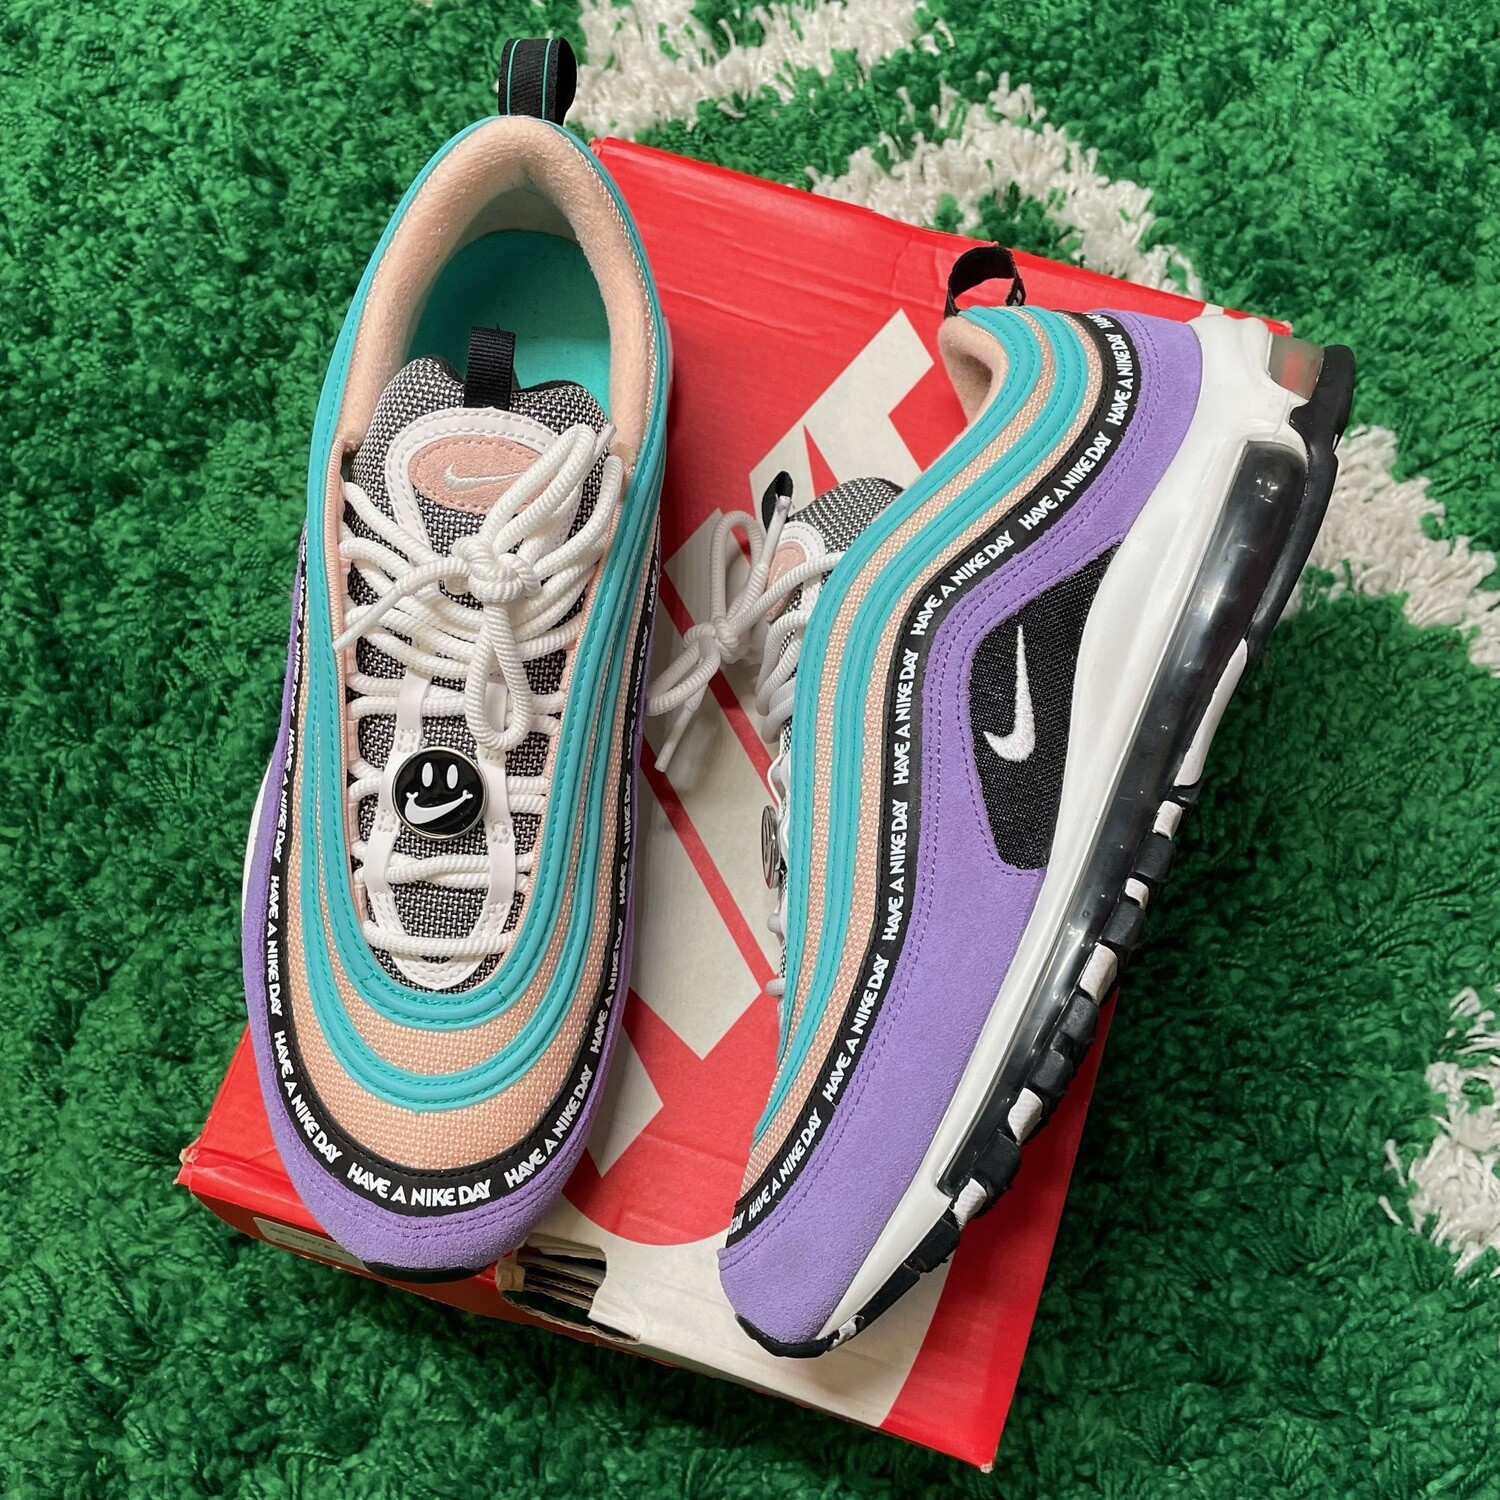 Nike Air Max 97 'Have a Nike Day' Size 11